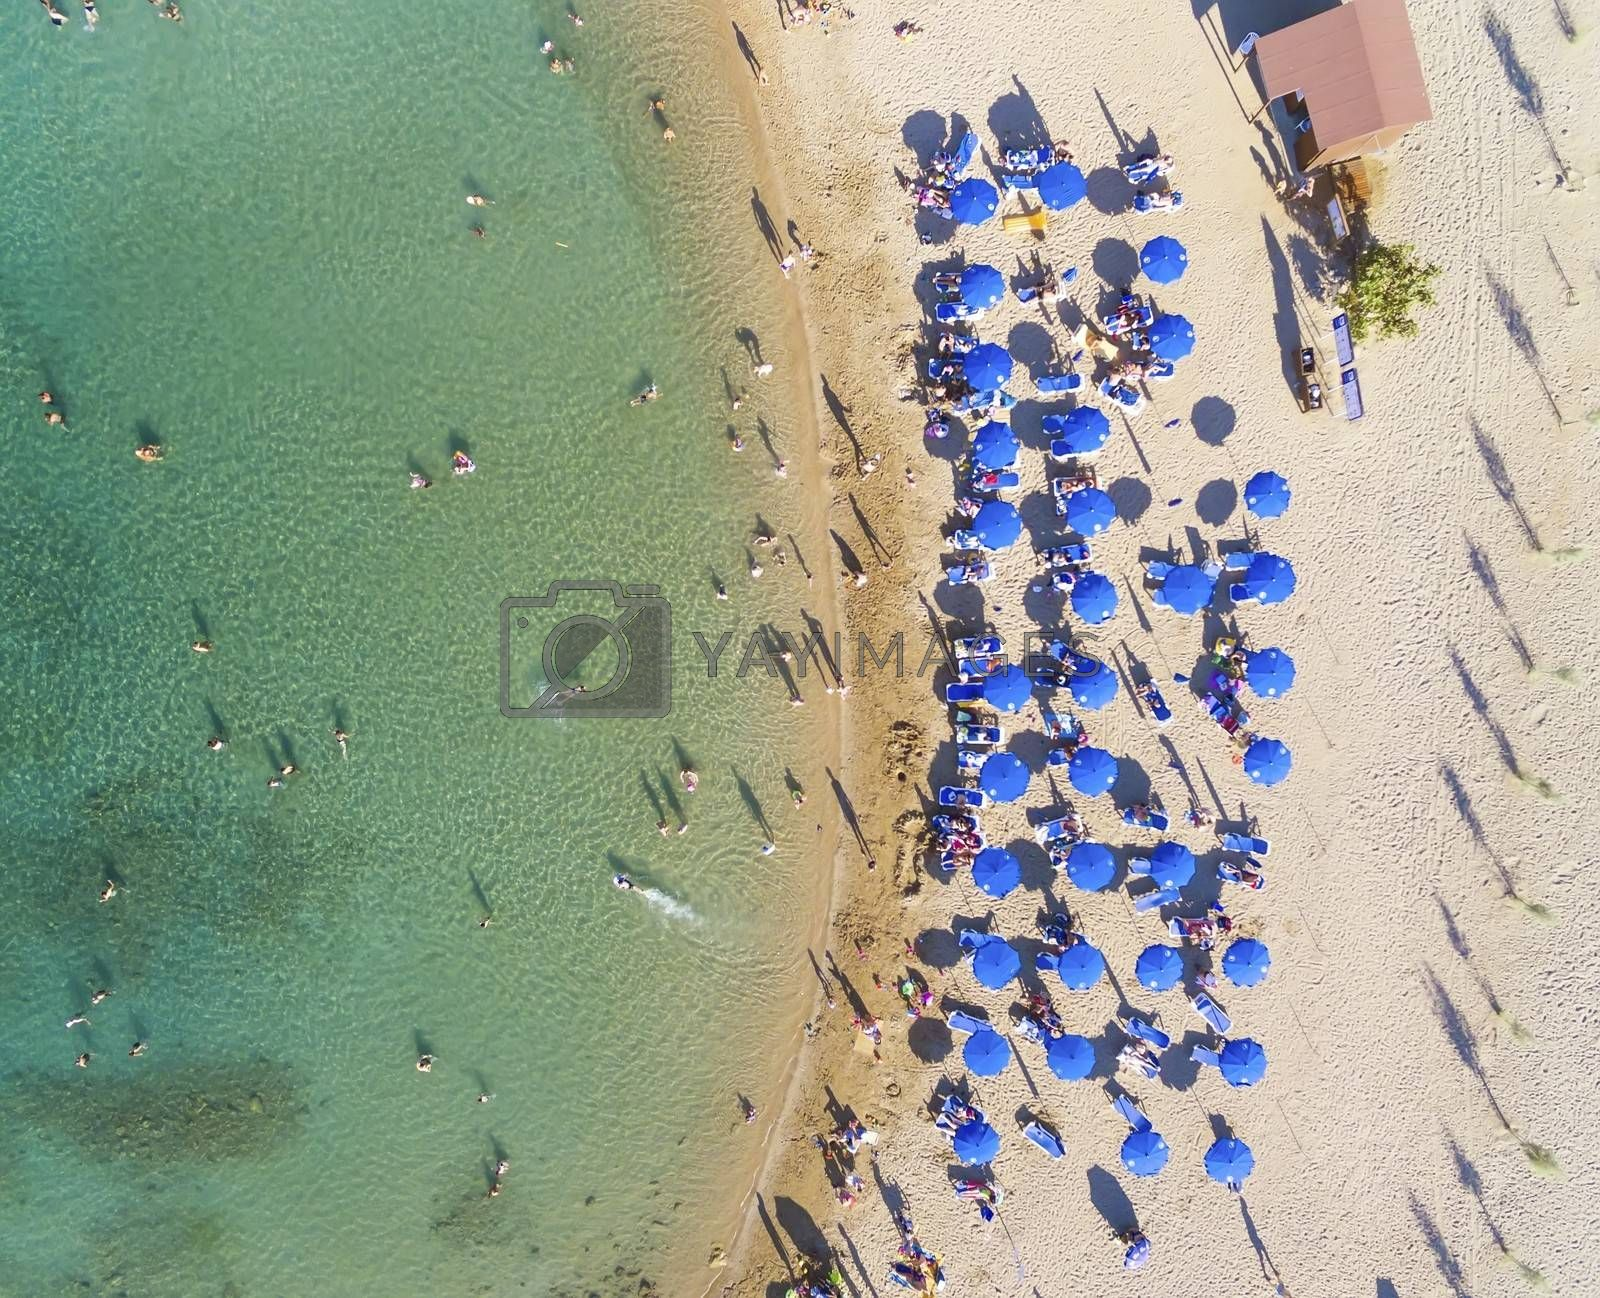 Aerial bird's eye view of sandy beach in Protaras, Famagusta, Cyprus island at the Agia Triada bay. Sun umbrellas, sea beds and silhouette of people sunbathing and swimming during the summer holiday heat